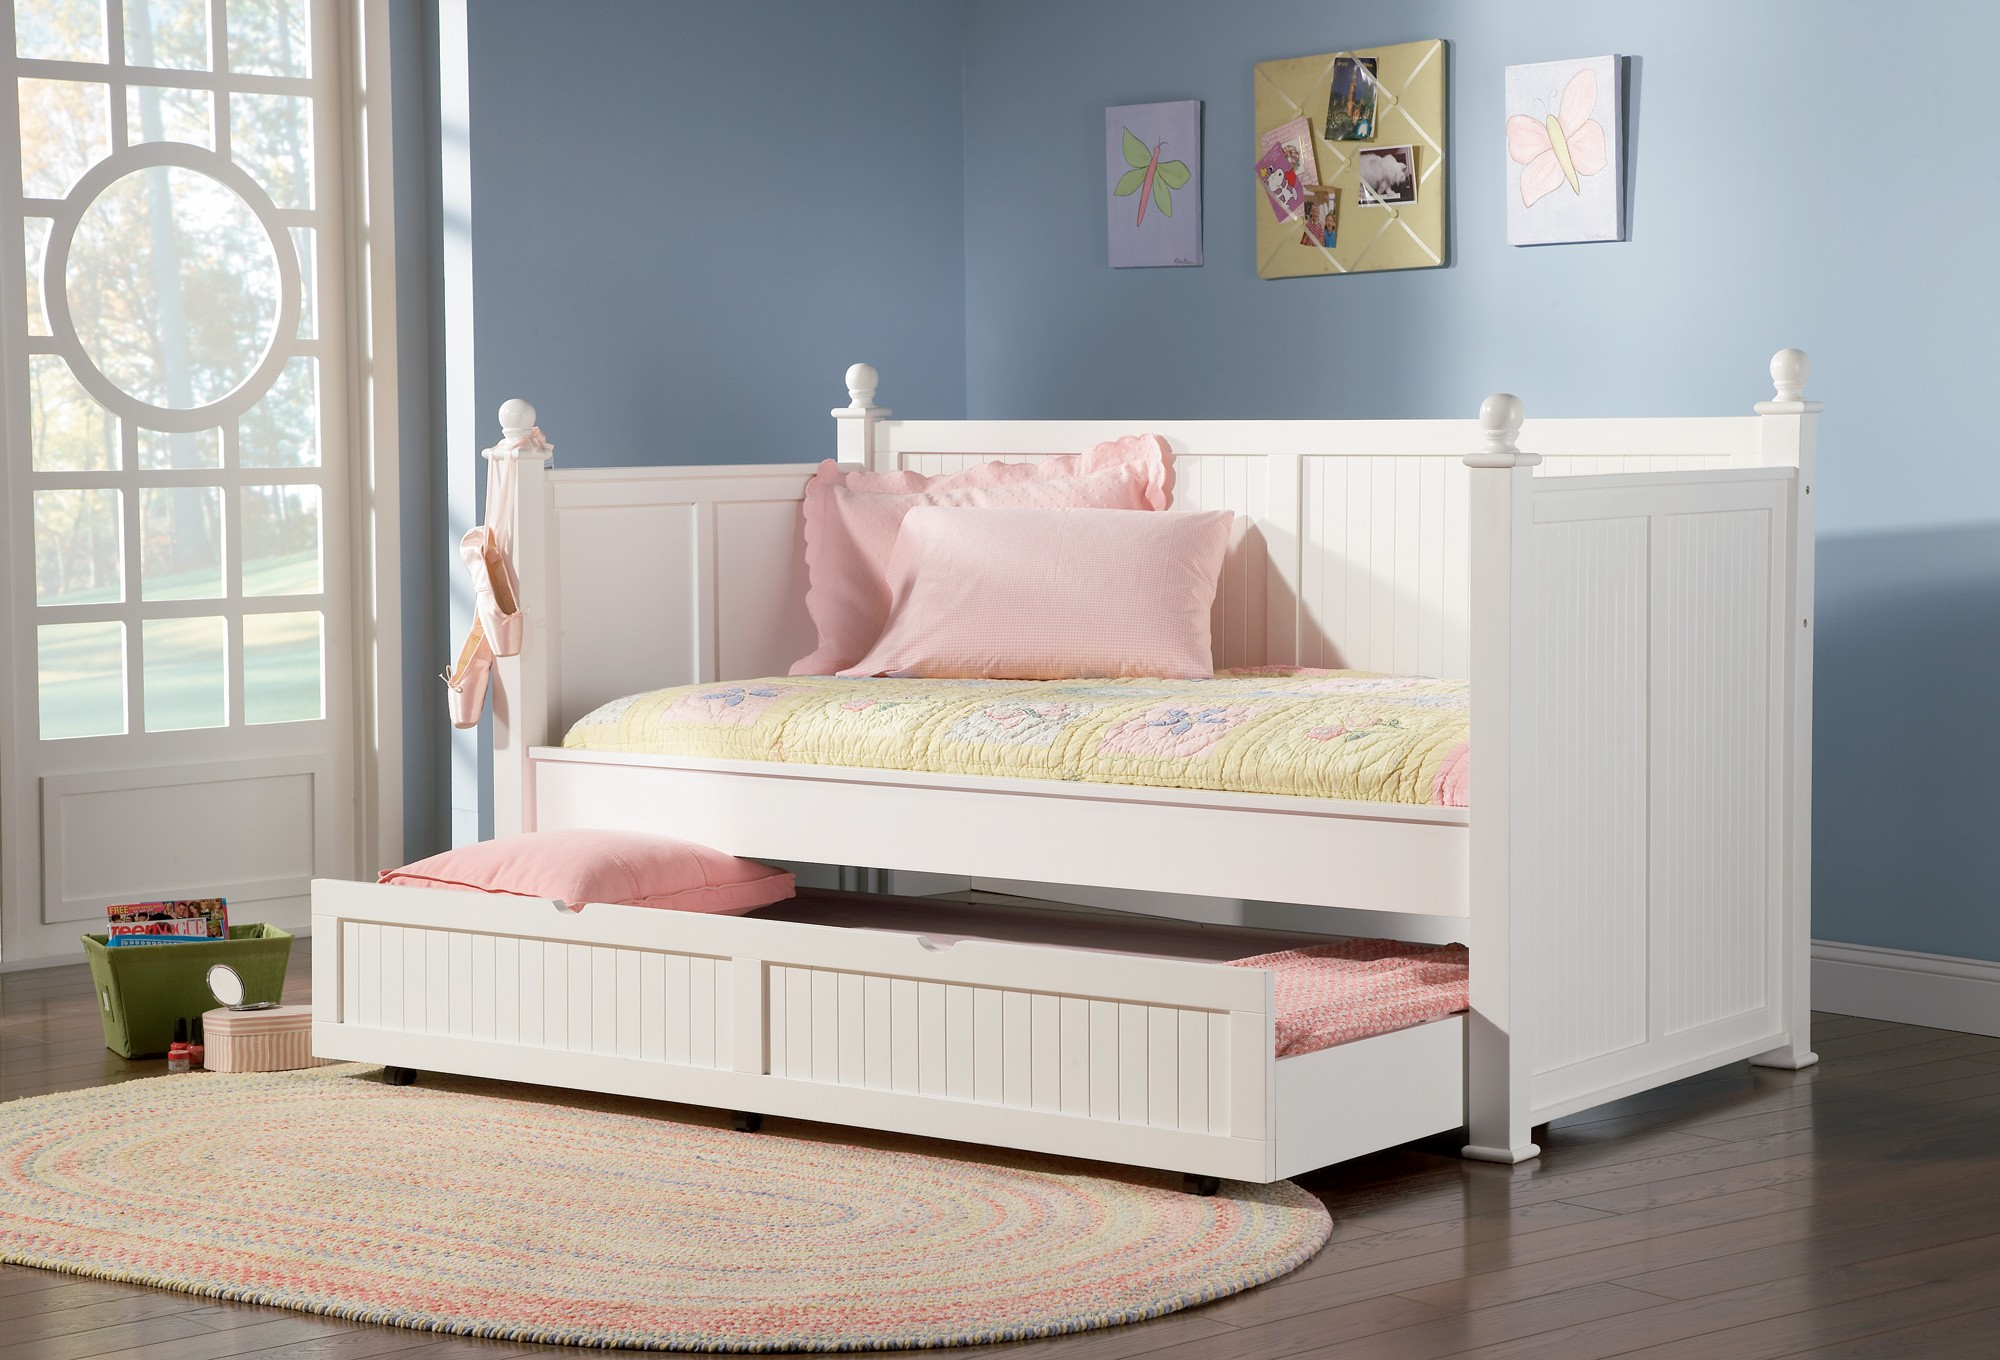 3 Twin Beds In The Space Of 1 Twin Size Day Bed 300026 From Coaster 300026 Coleman